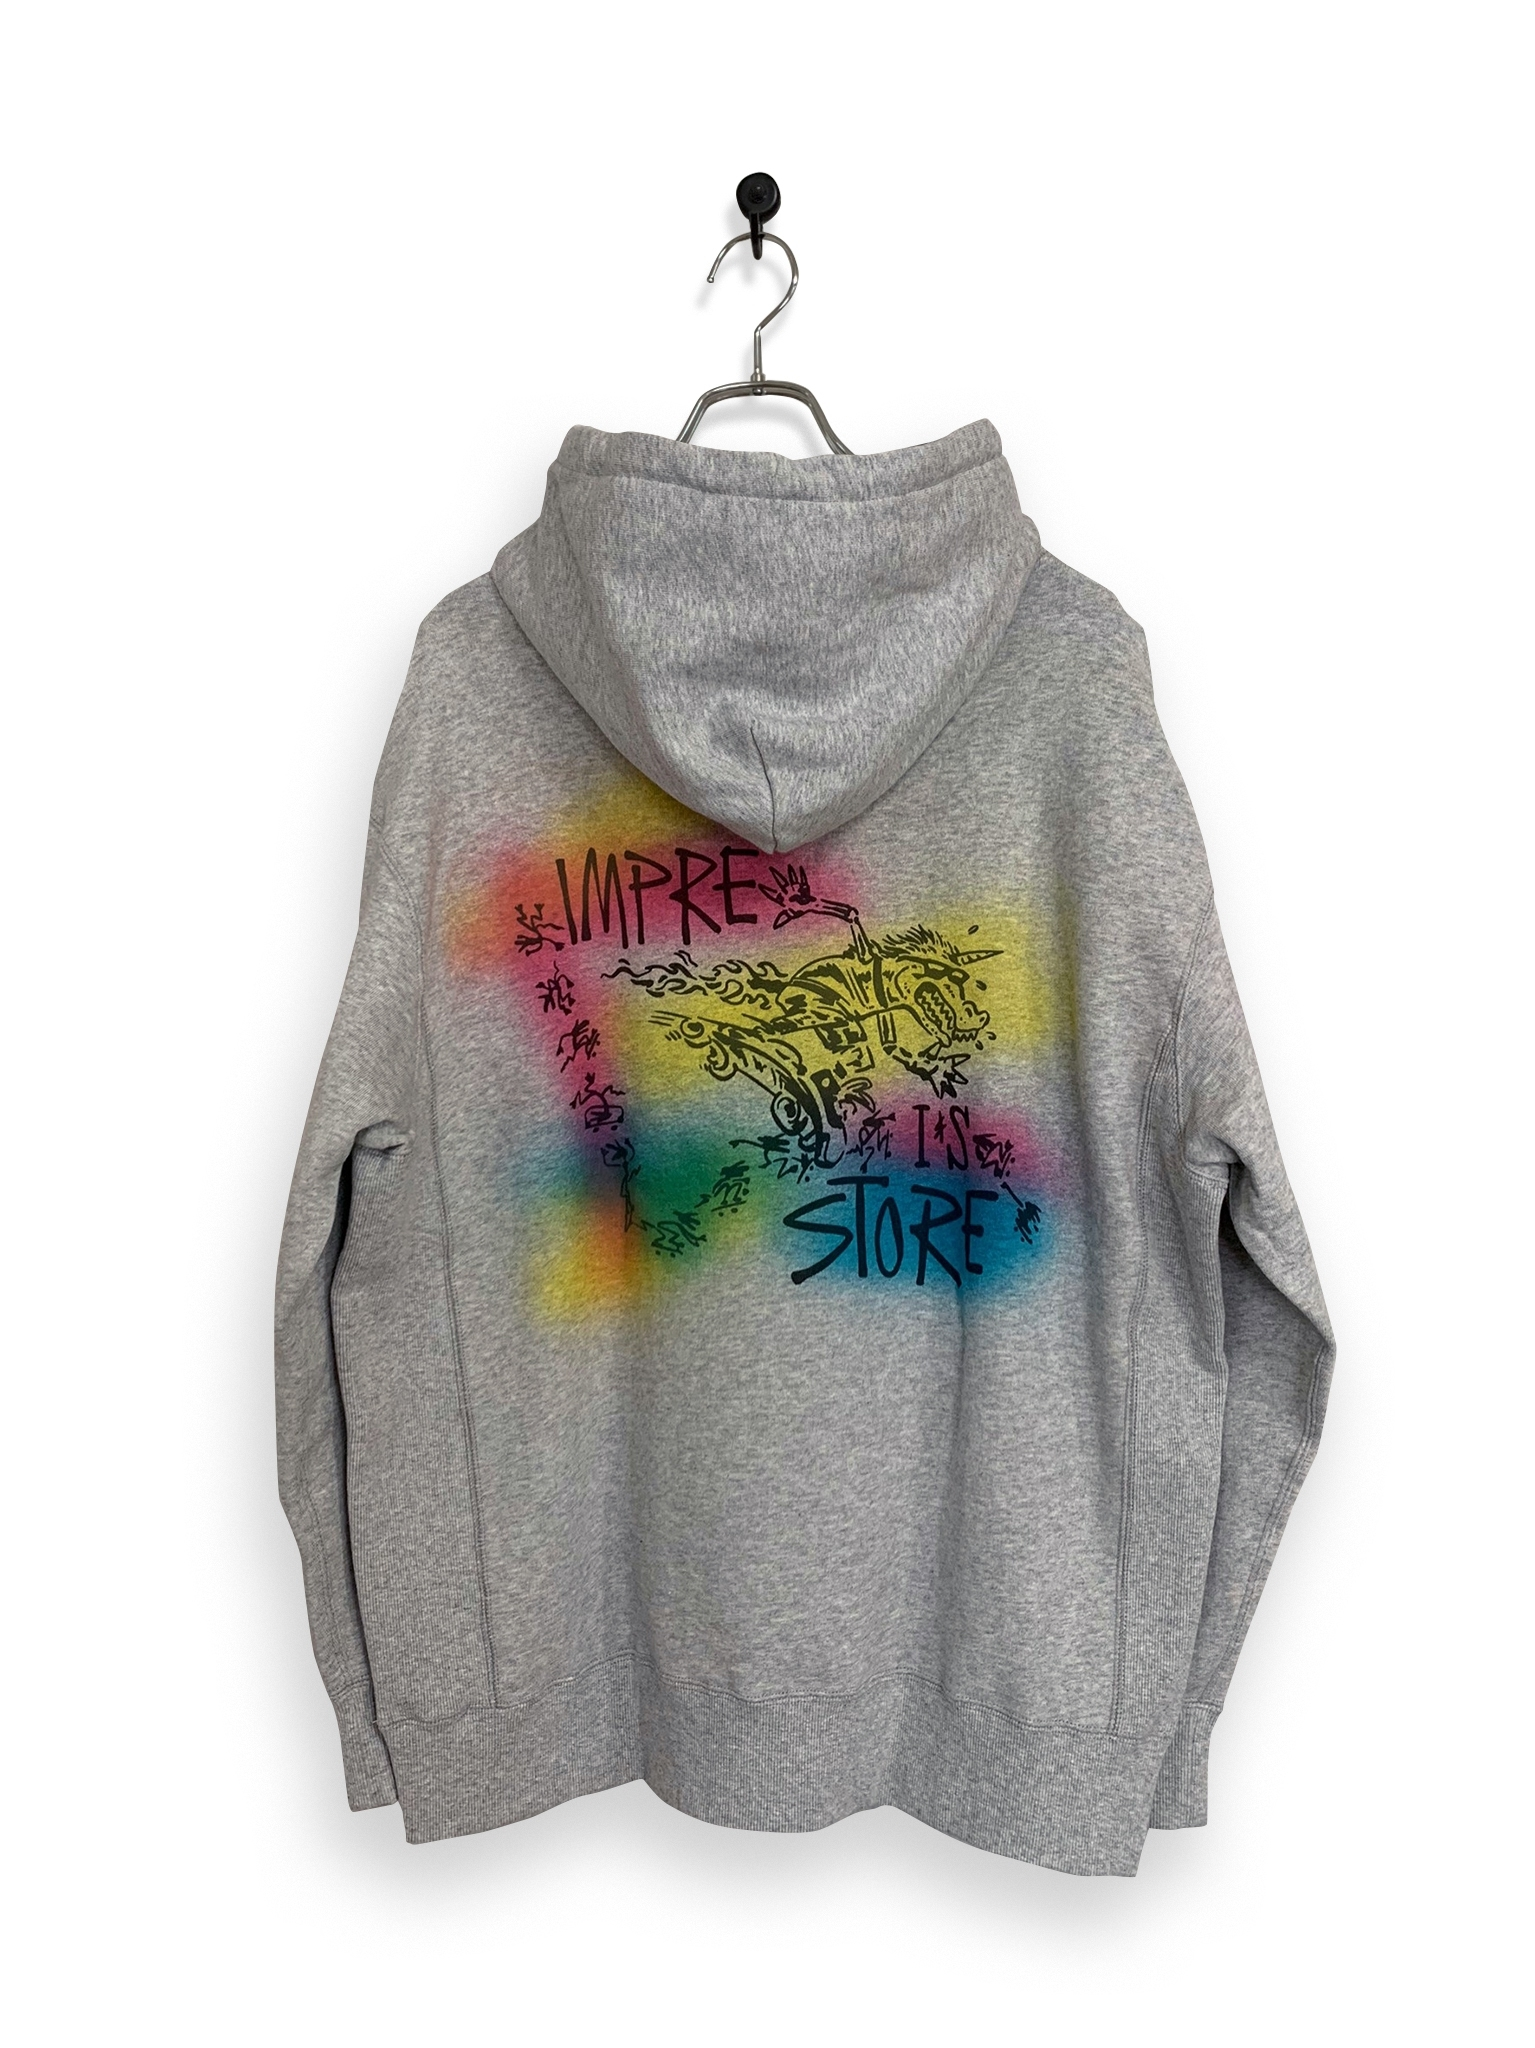 Original Hooded Sweatshirt / air brush / ash gray